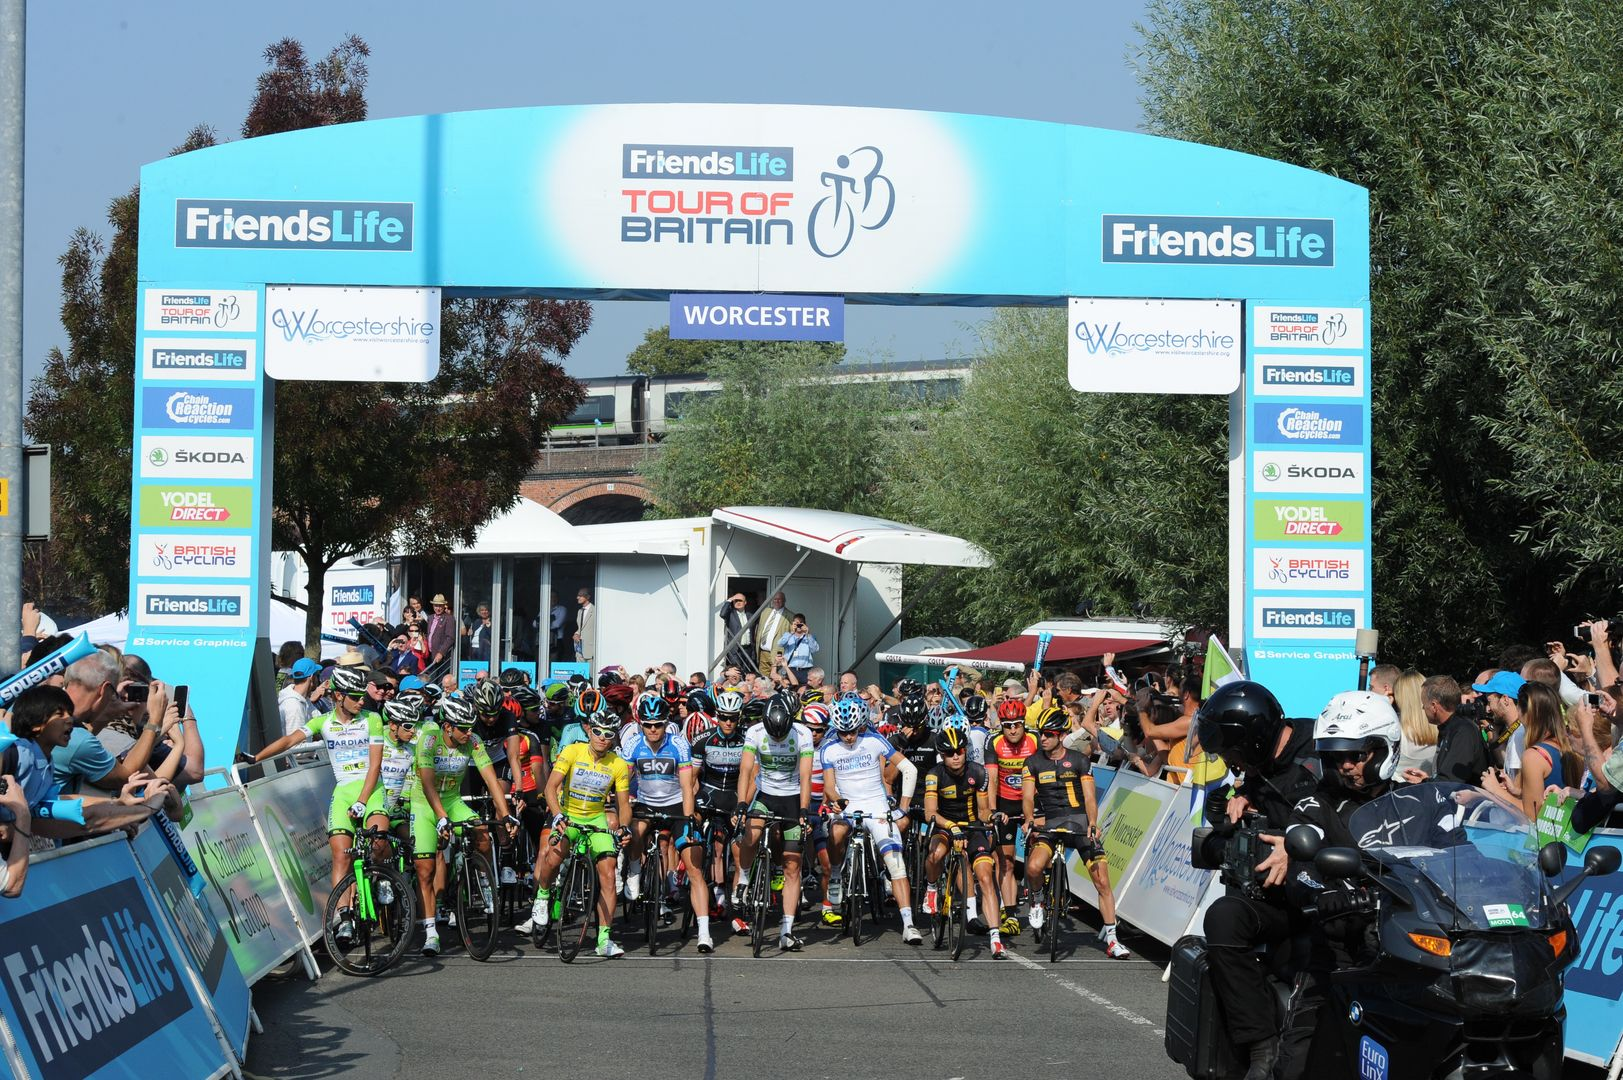 Worcester hosted the start of Stage Four of the 2014 Friends Life Tour of Britain